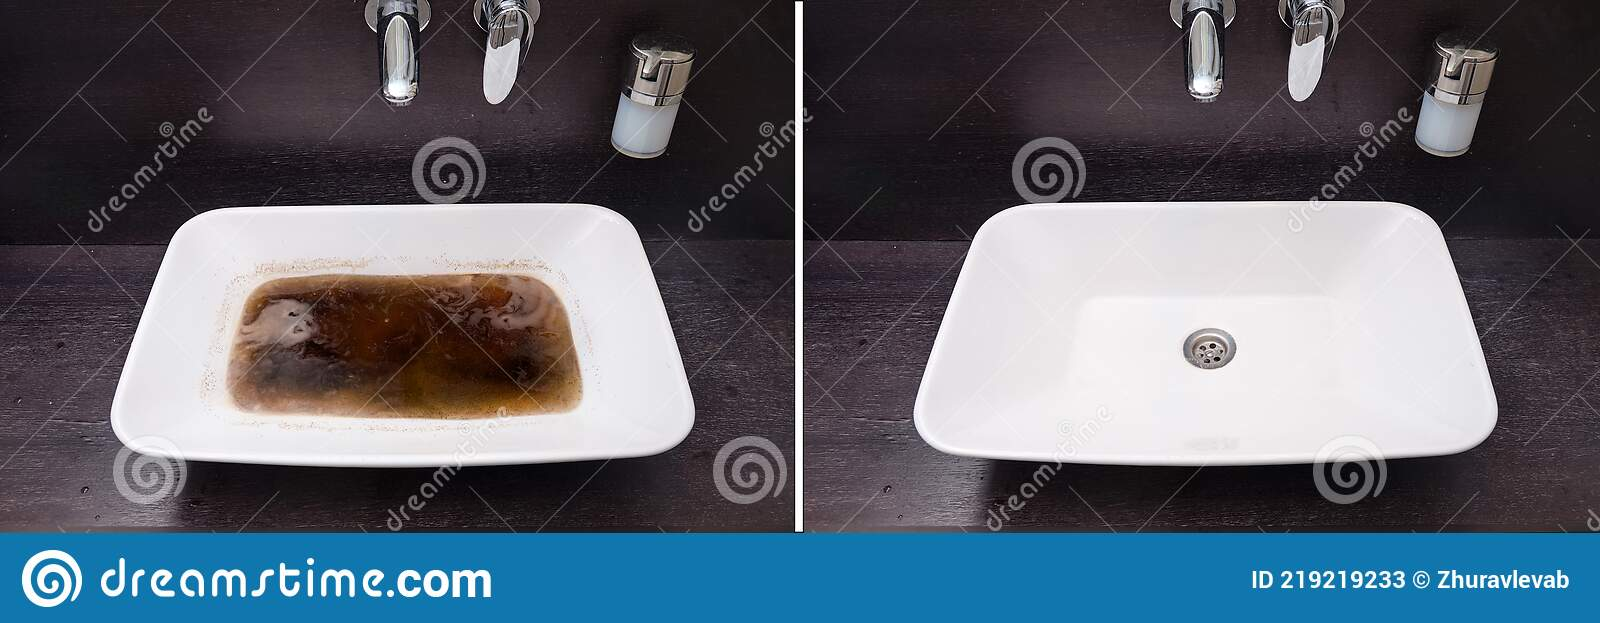 Bathroom Sink Before And After Cleaning The Blockage Dirty And Clean Sink Bowl Stock Image Image Of Dirty Bath 219219233